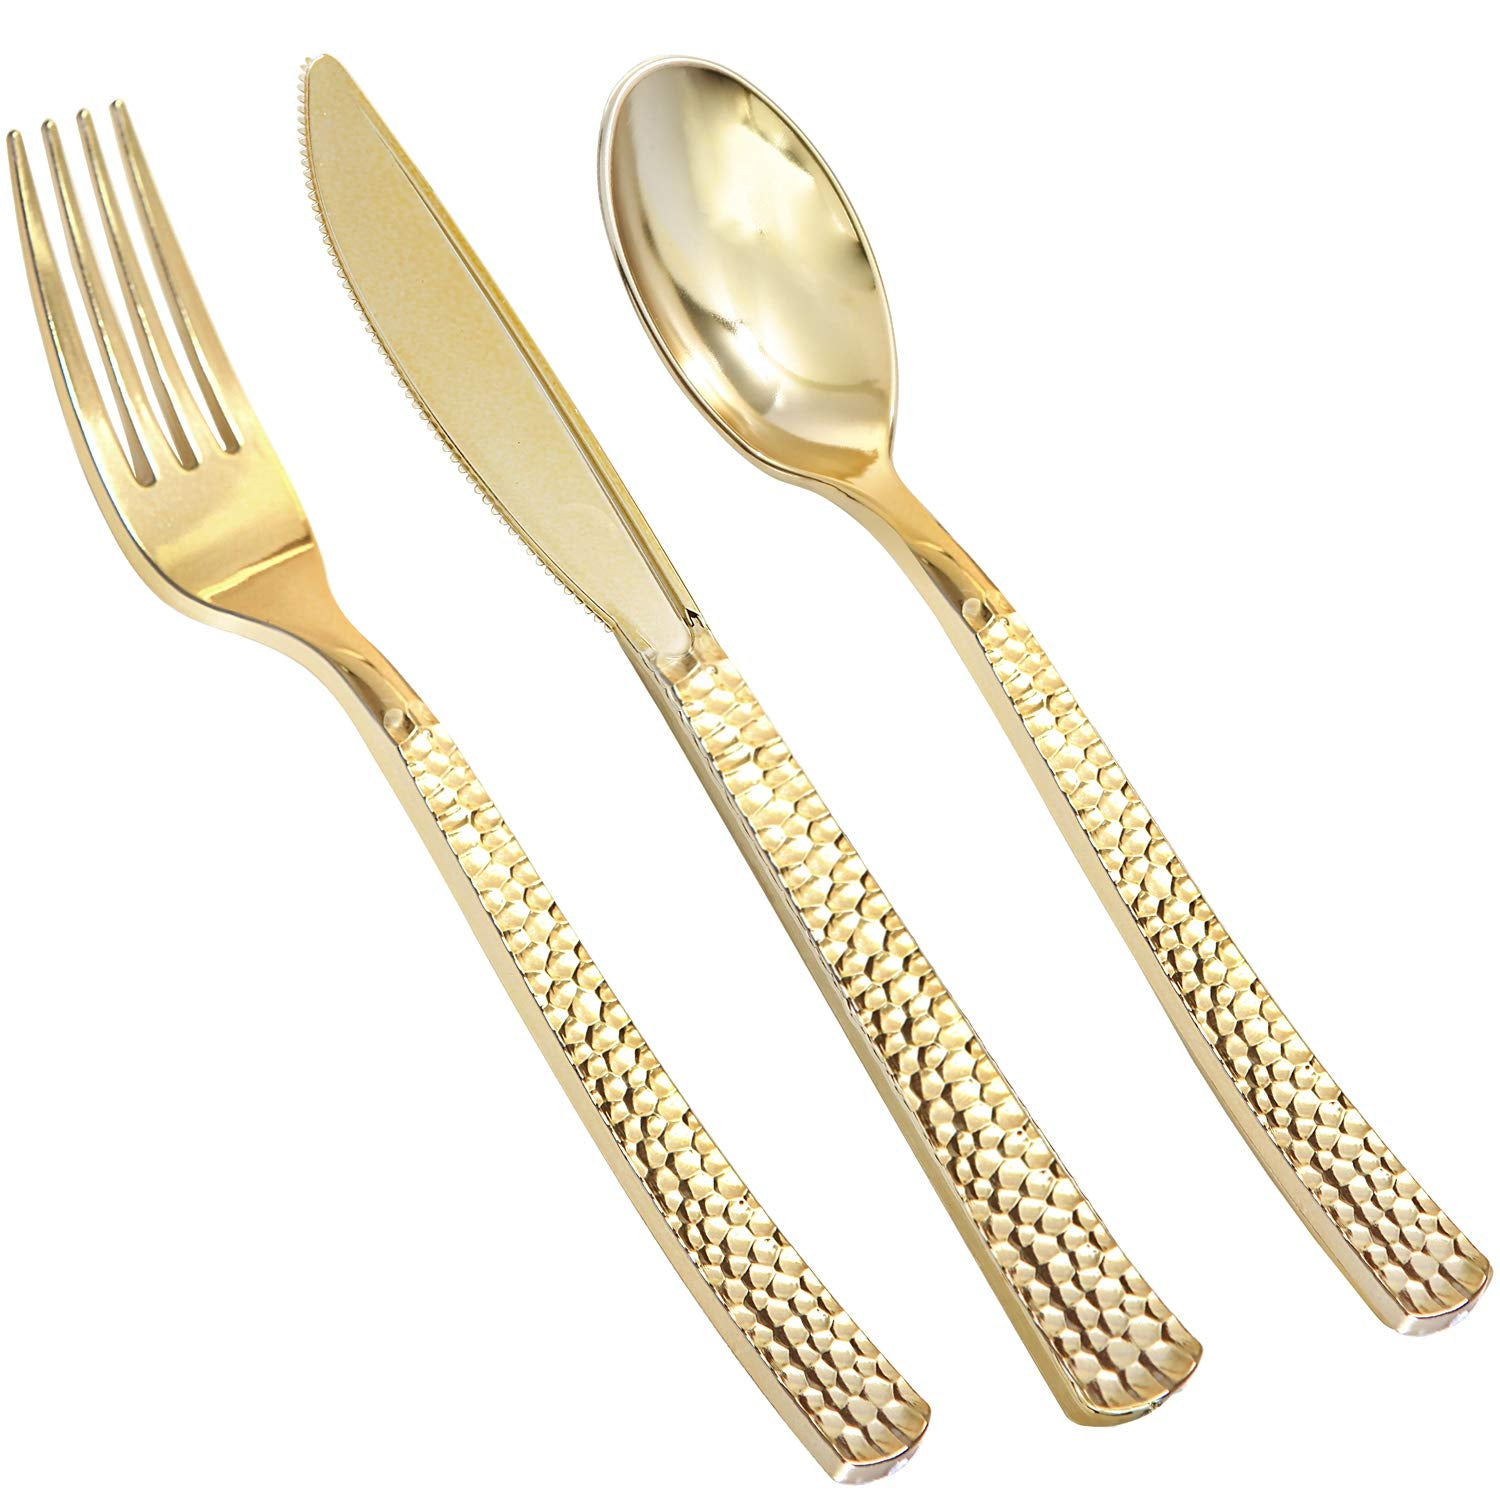 180 Pieces Gold Plastic Silverware, Party Plastic Flatware, Wedding Plastic Cutlery Include 60 Gold Forks, 60 Gold Knives, 60 Gold Spoons, Supernal